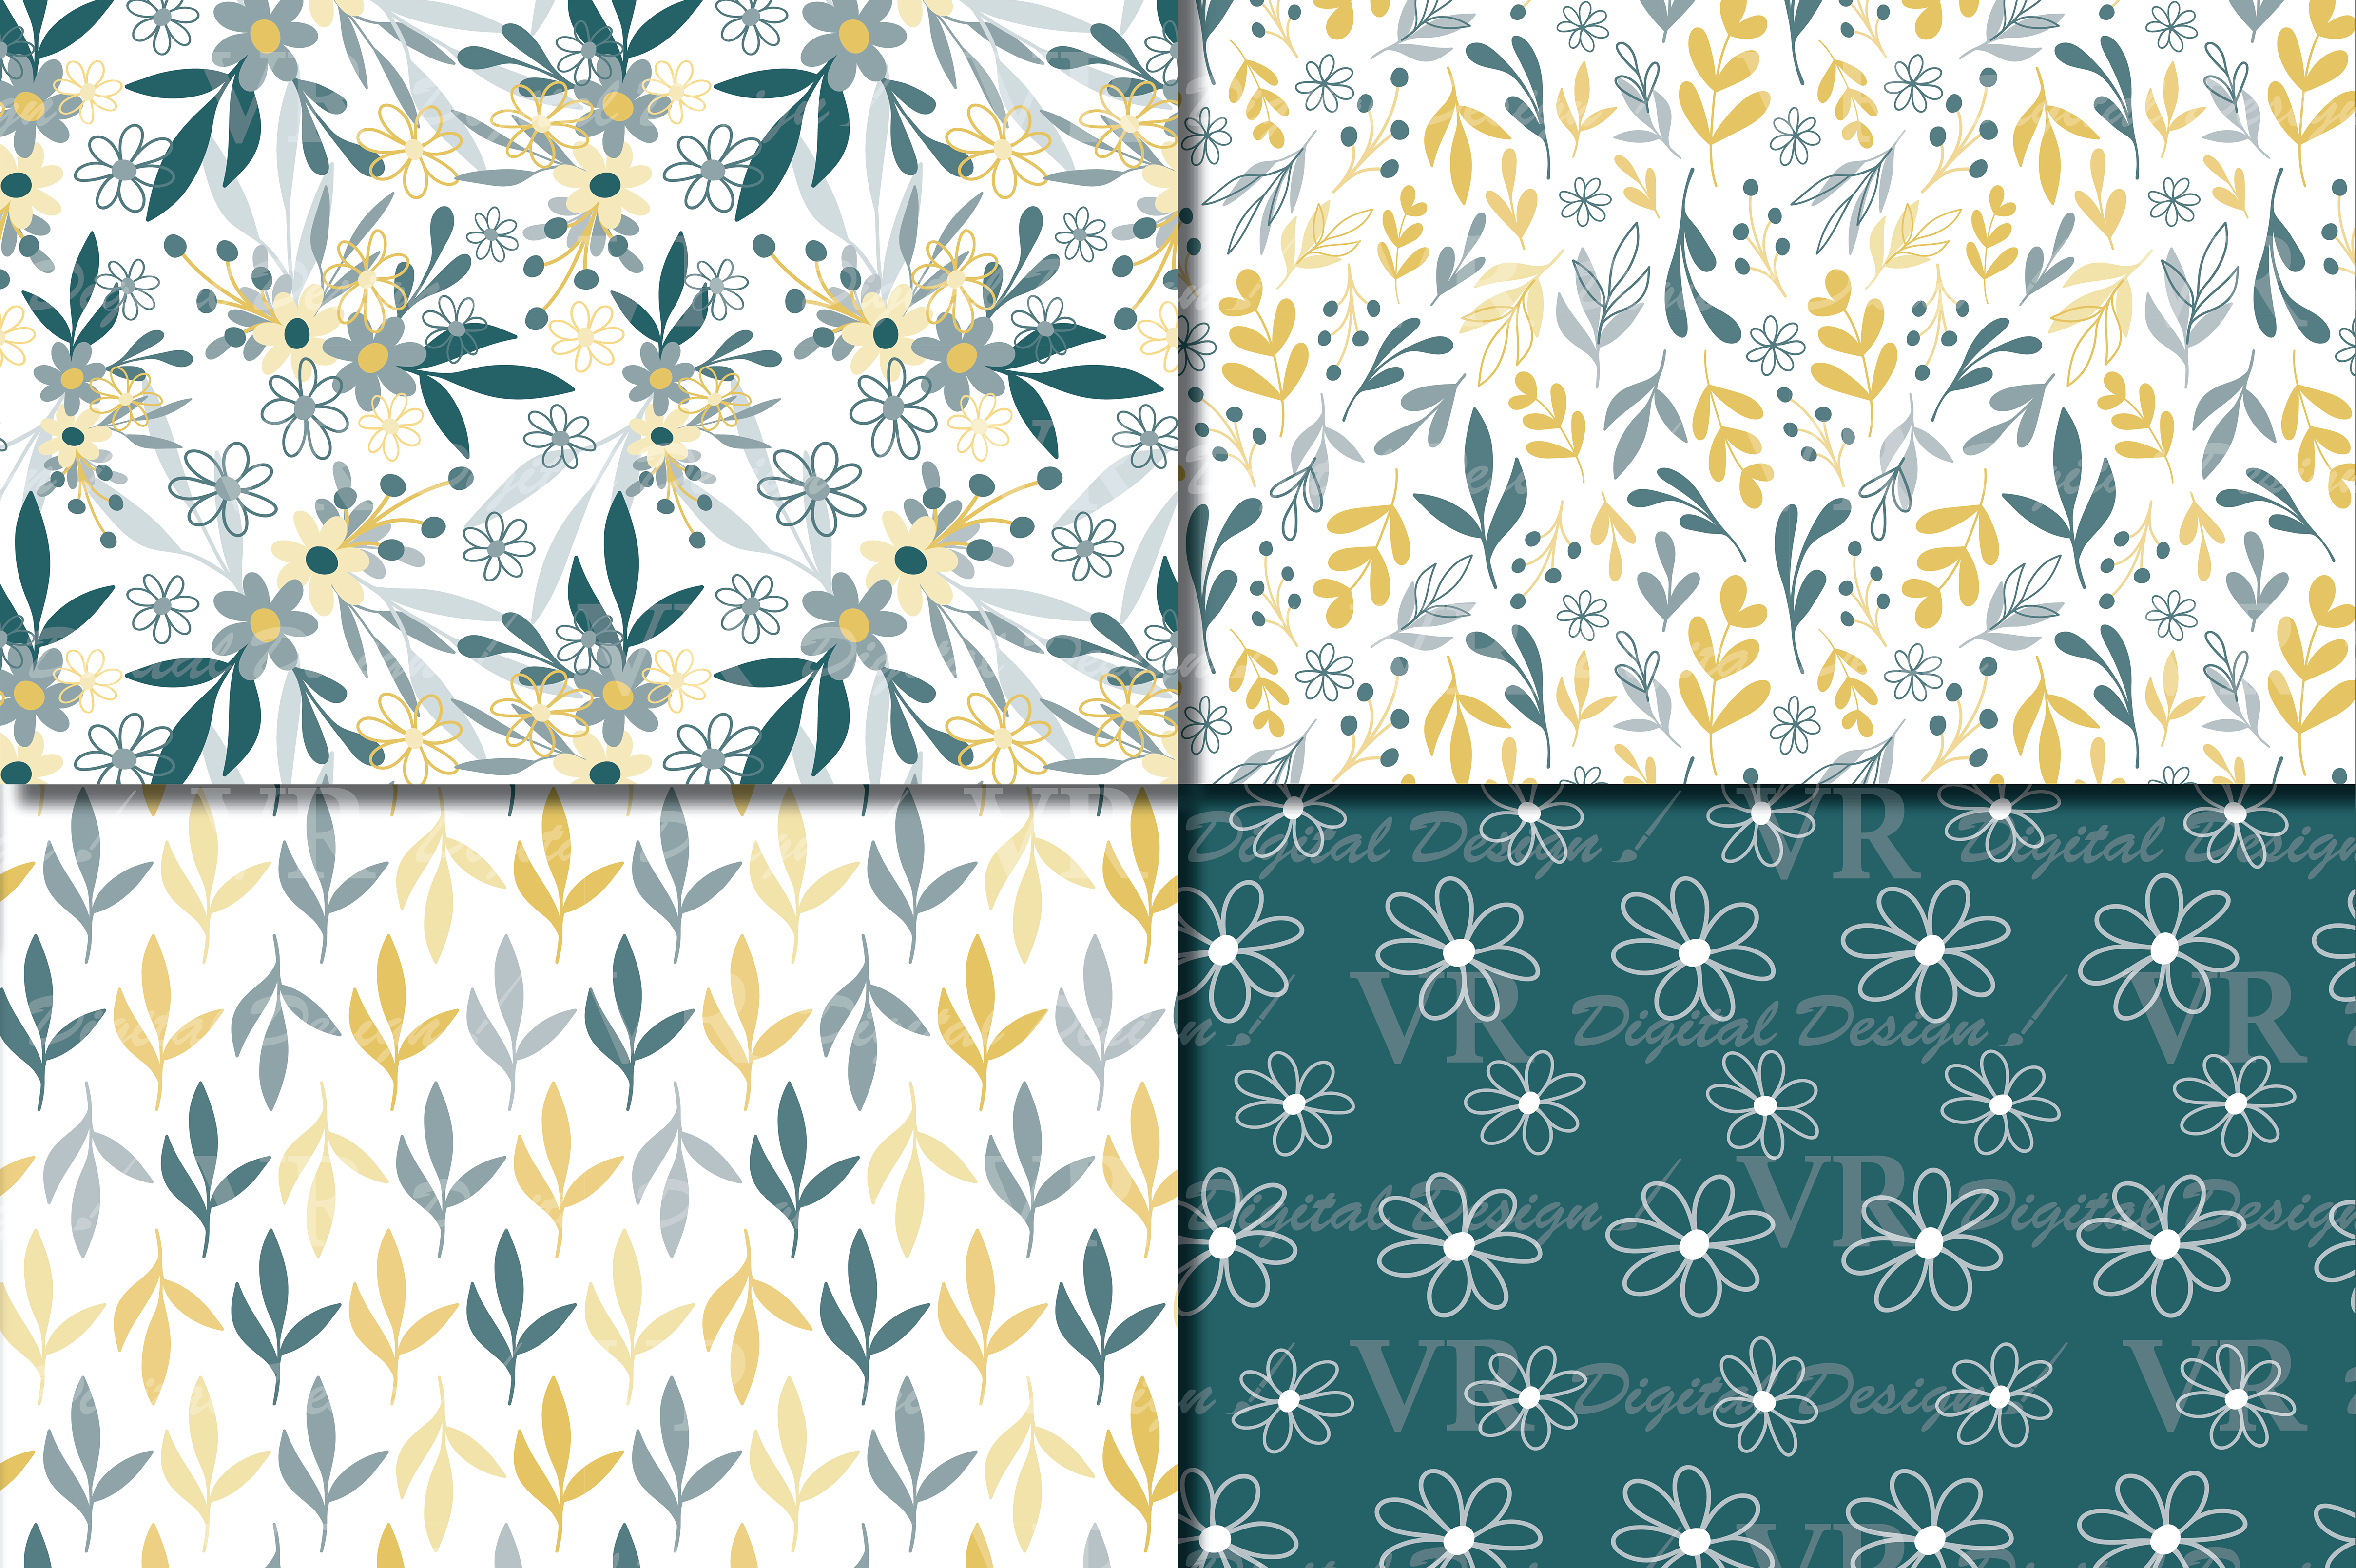 Download Free Seamless Green And Yellow Hand Drawn Flowers And Leaves Digital for Cricut Explore, Silhouette and other cutting machines.